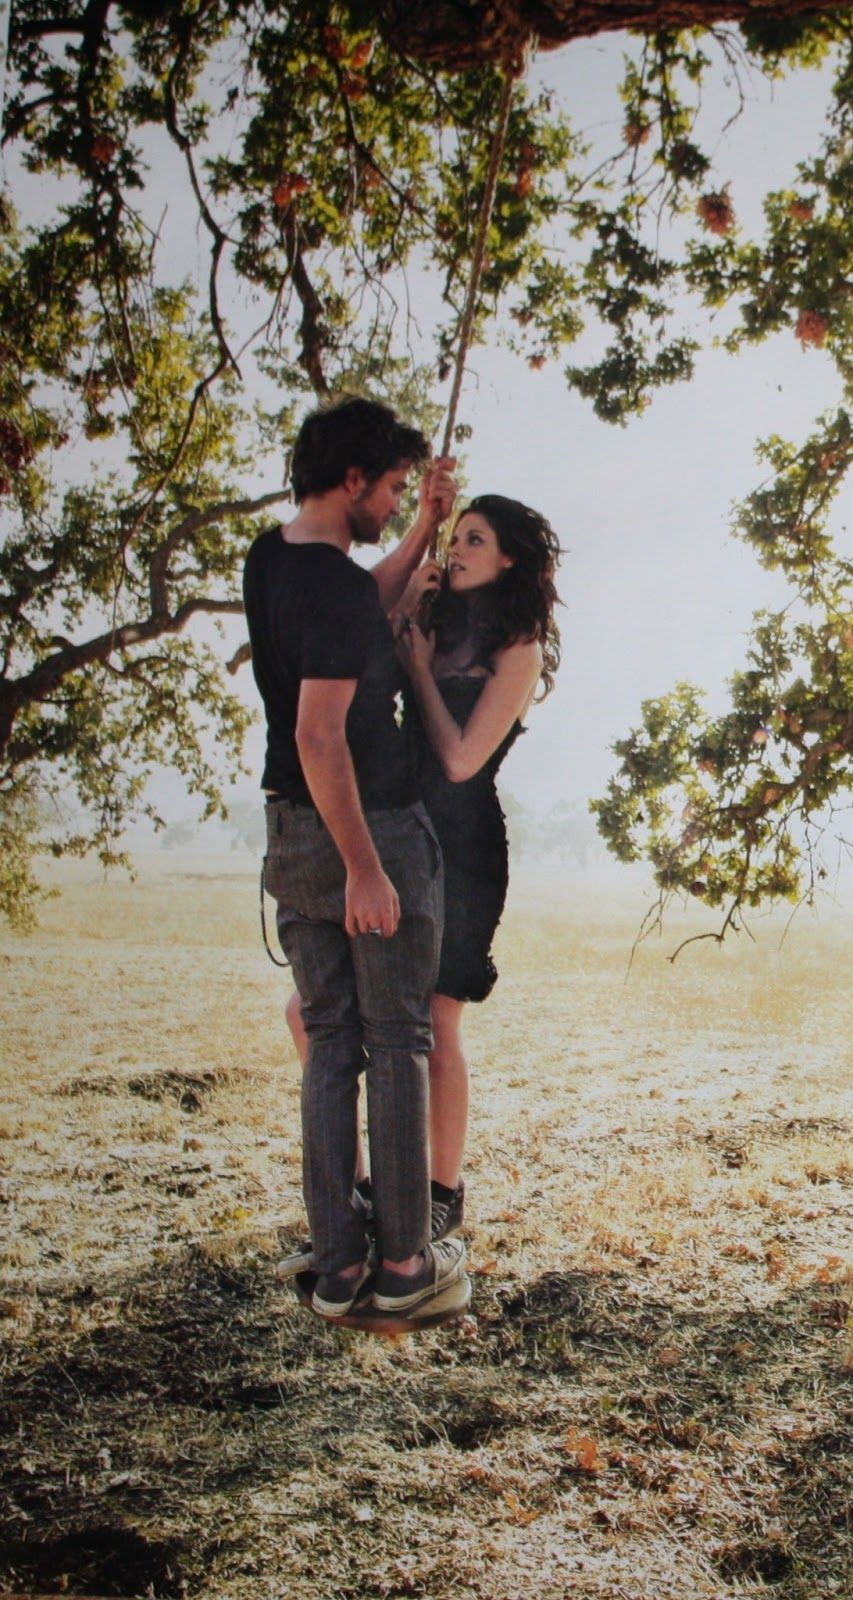 Robsten Dreams: Robsten Pic of the Day --  You can't fake that. They're great actors but what they have requires only what lies in their hearts. ~ Vanity Fair Photoshoot - 2008